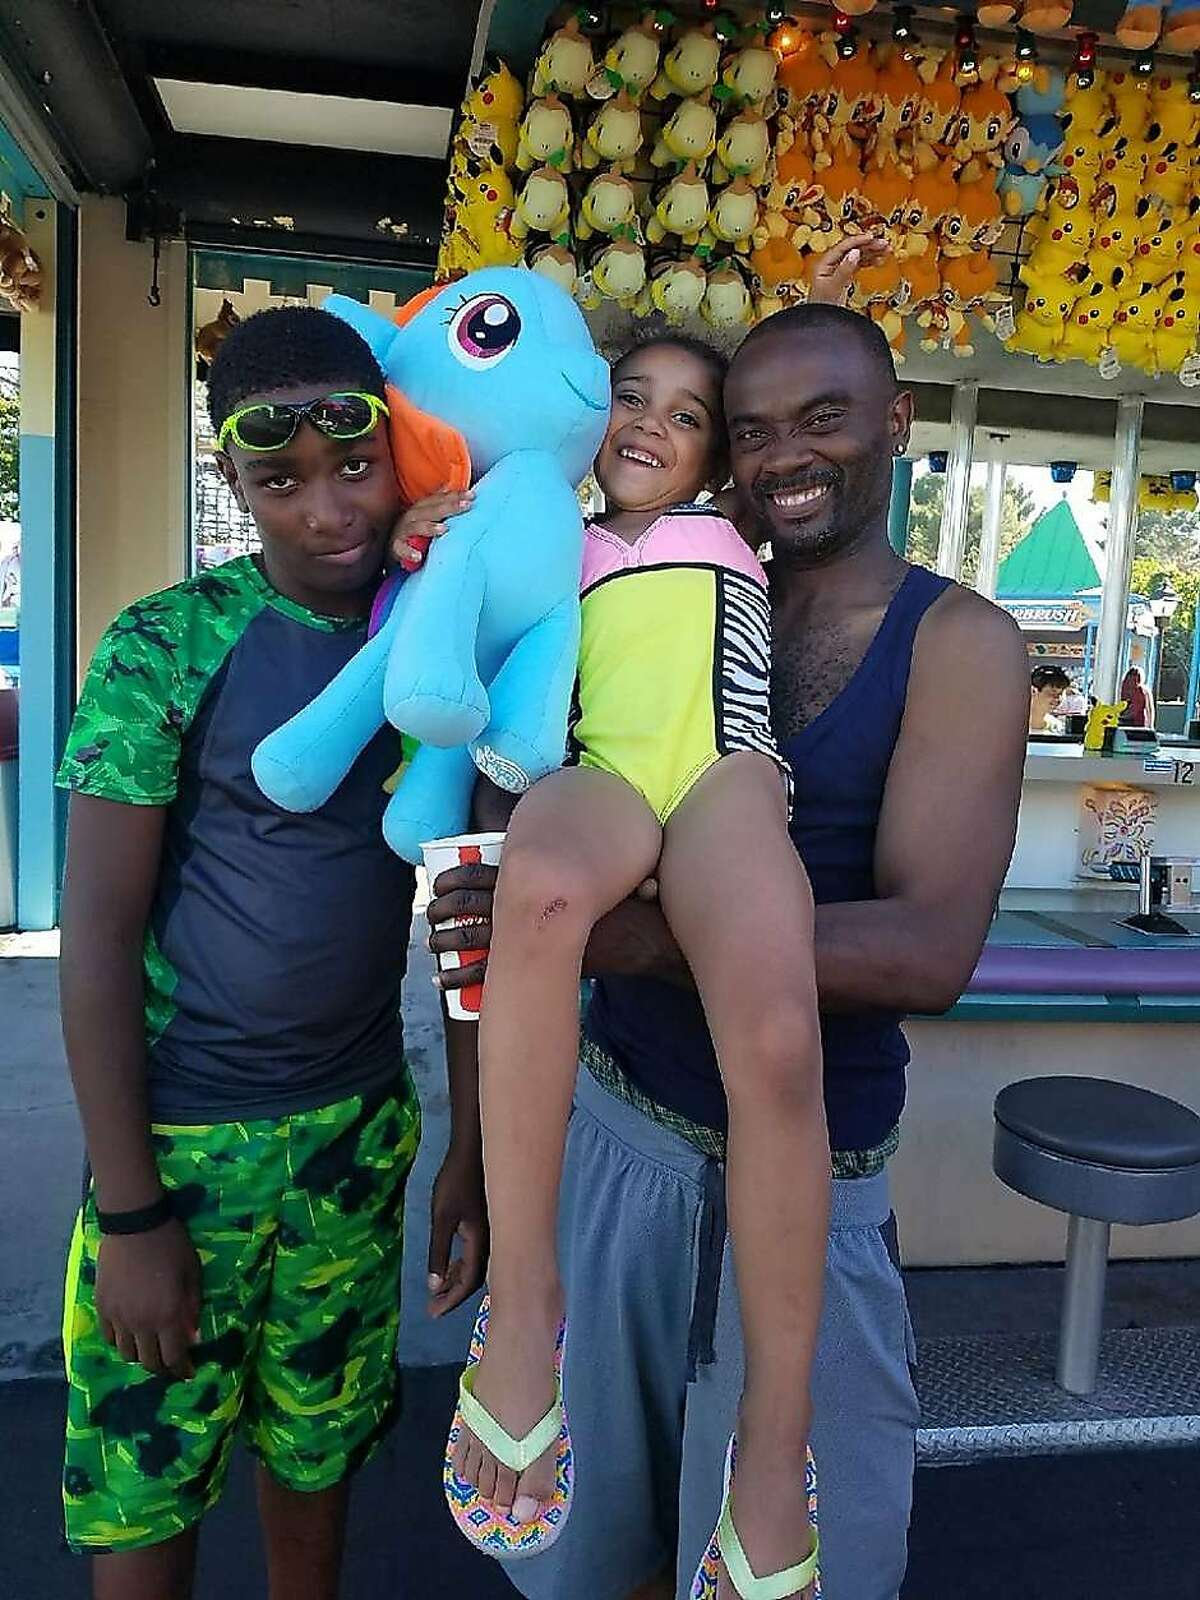 Ronell Foster, right, seen in this undated photo with his two children. Foster was fatally shot by a Vallejo police officer in February 2018. On Friday,Solano County district attorney's office announced Friday that the Vallejo police officer who fatally shot Ronnell Foster in February 2018 was justified in the fatal shooting.